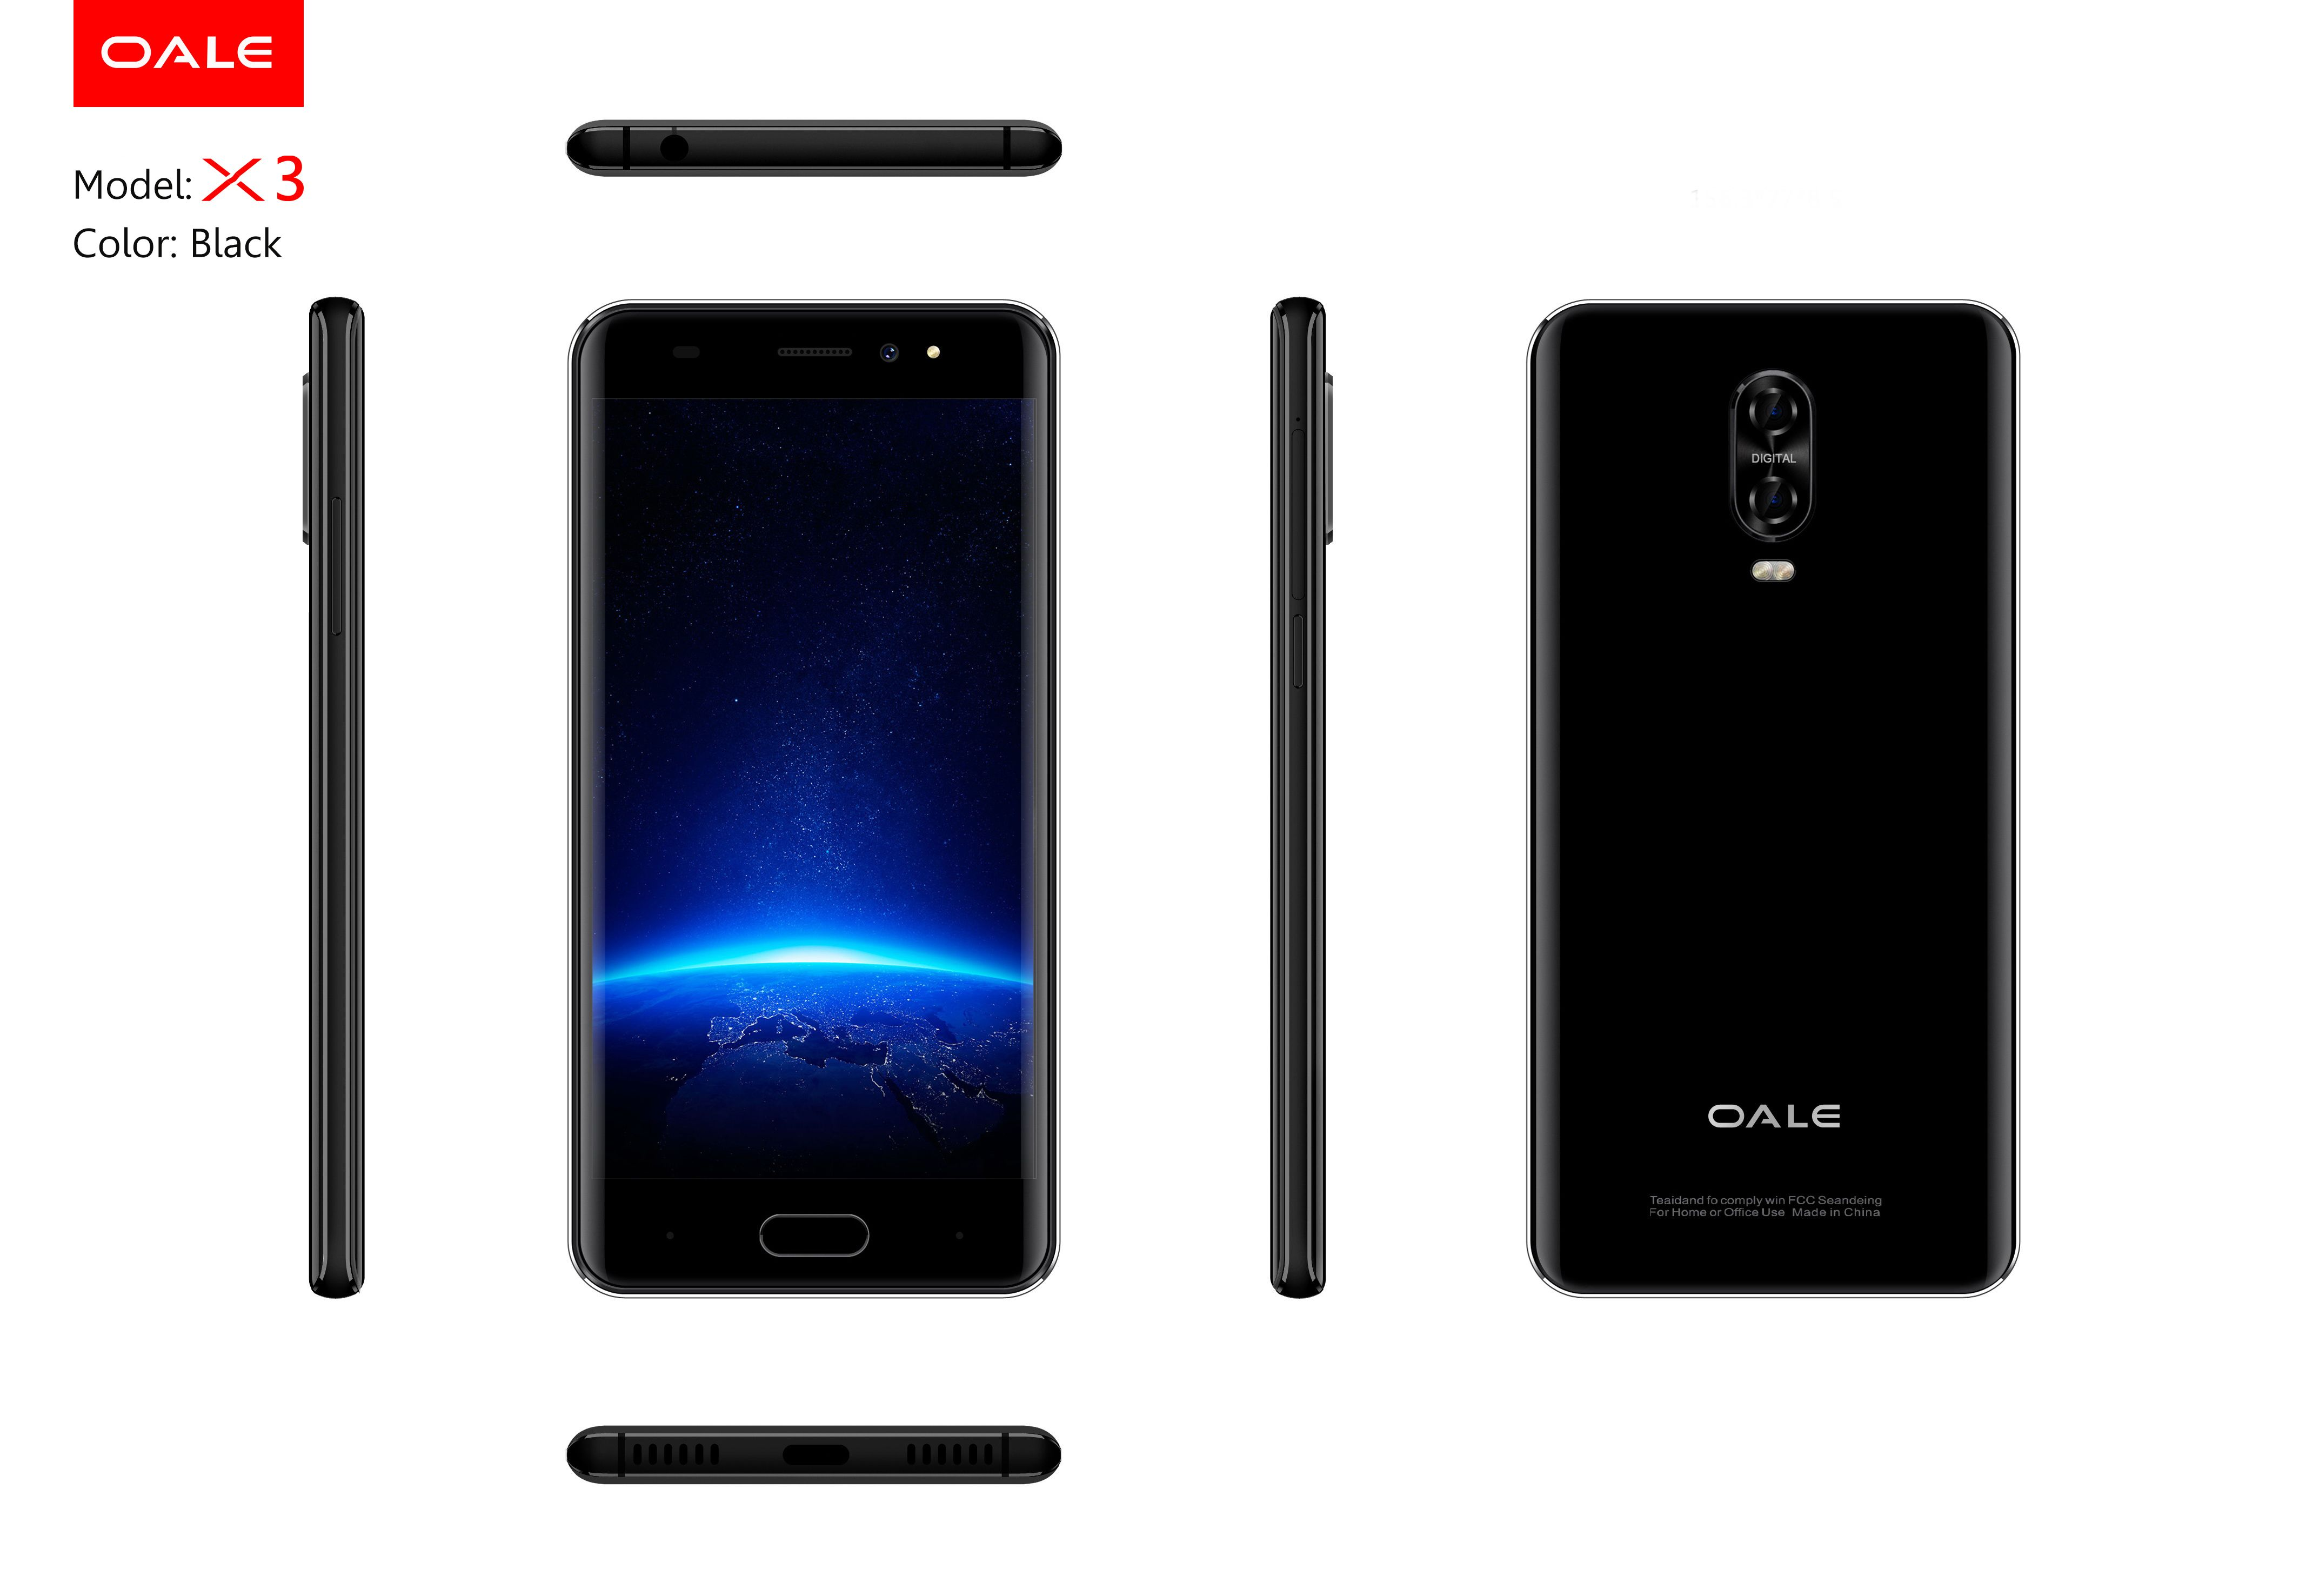 Oale X3, Black Color